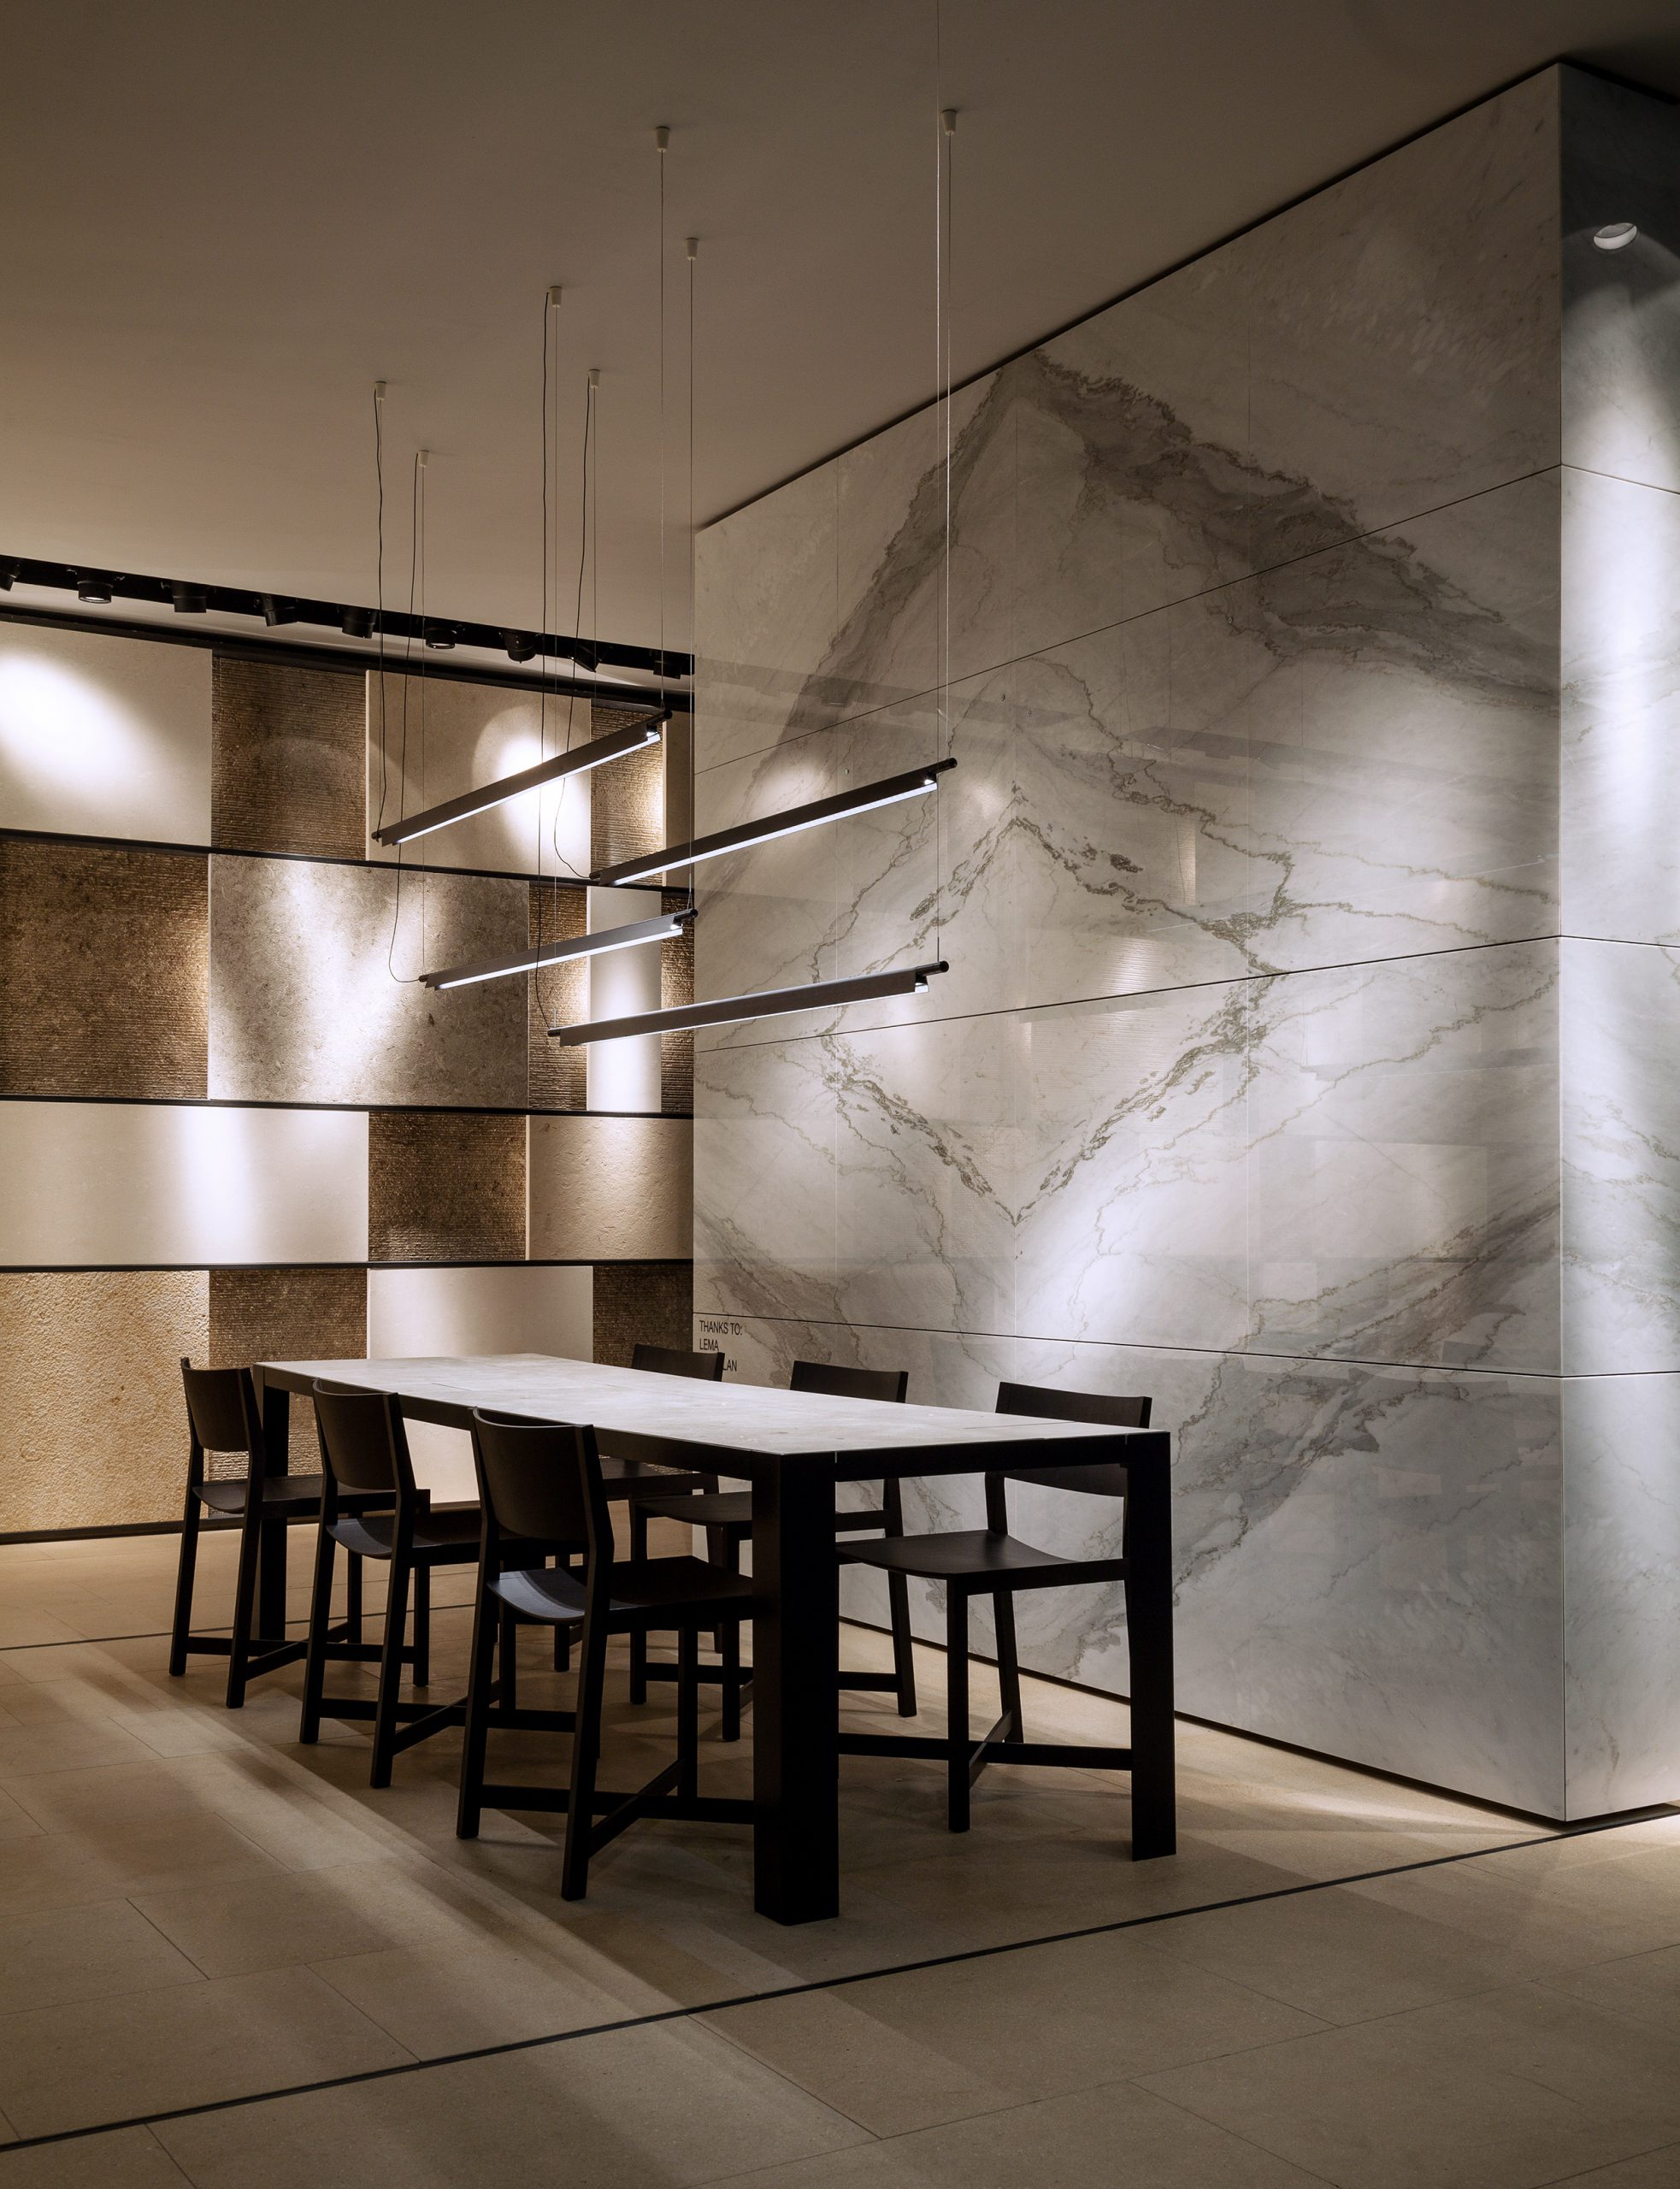 Meeting area at Marmomac 2016 booth designed by Debiasi Sandri for Grassi Pietre